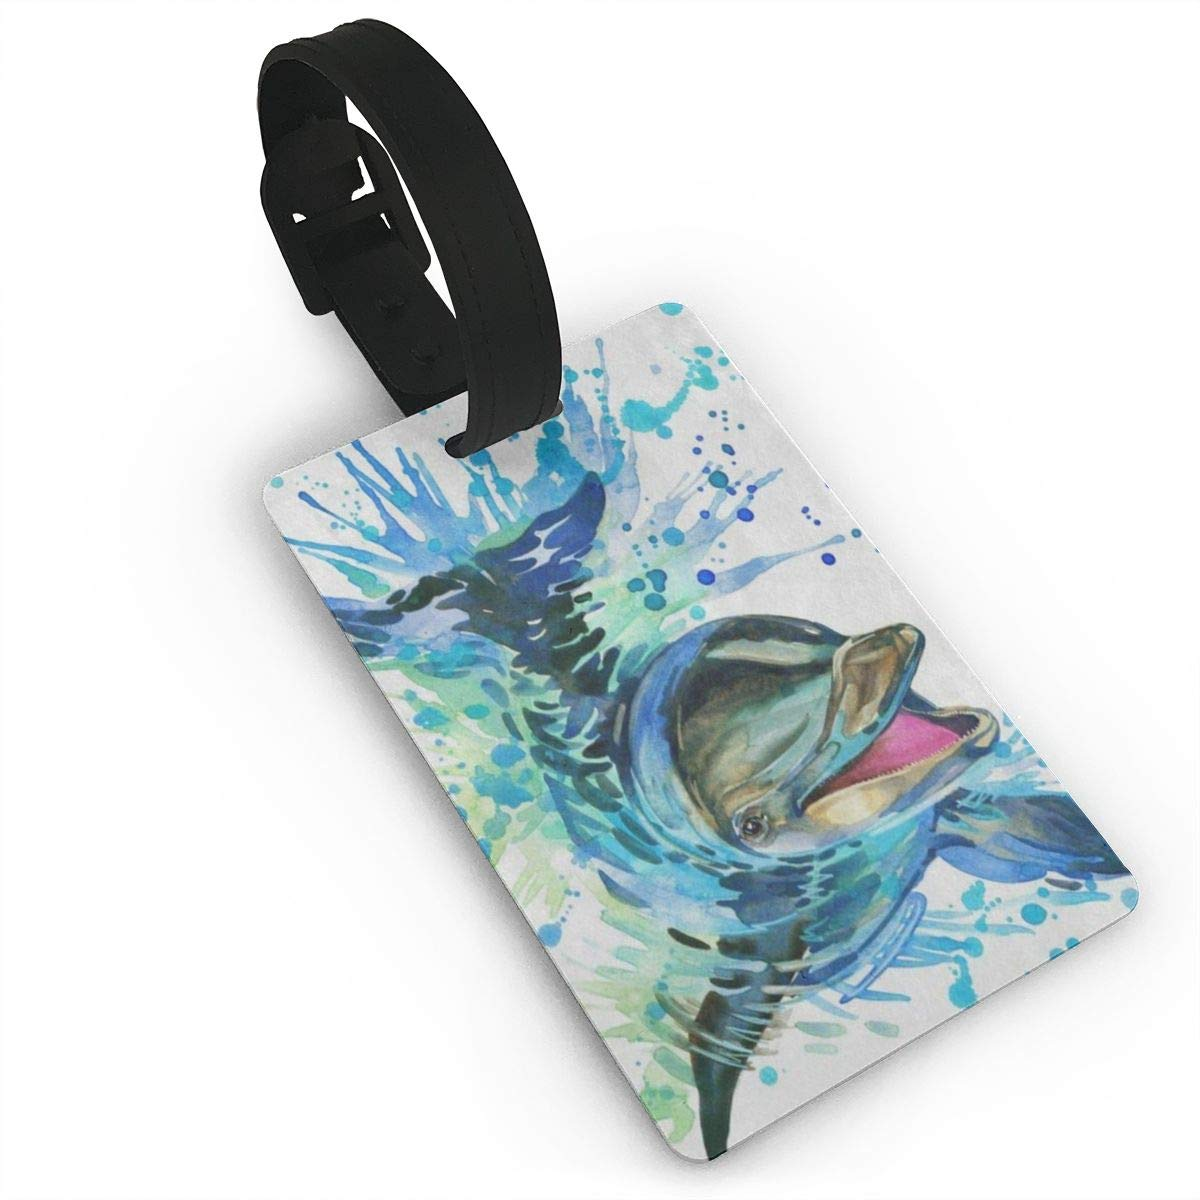 Luggage Tags Watercolor Funny Dolphin Bag Tag for Travel 2 PCS